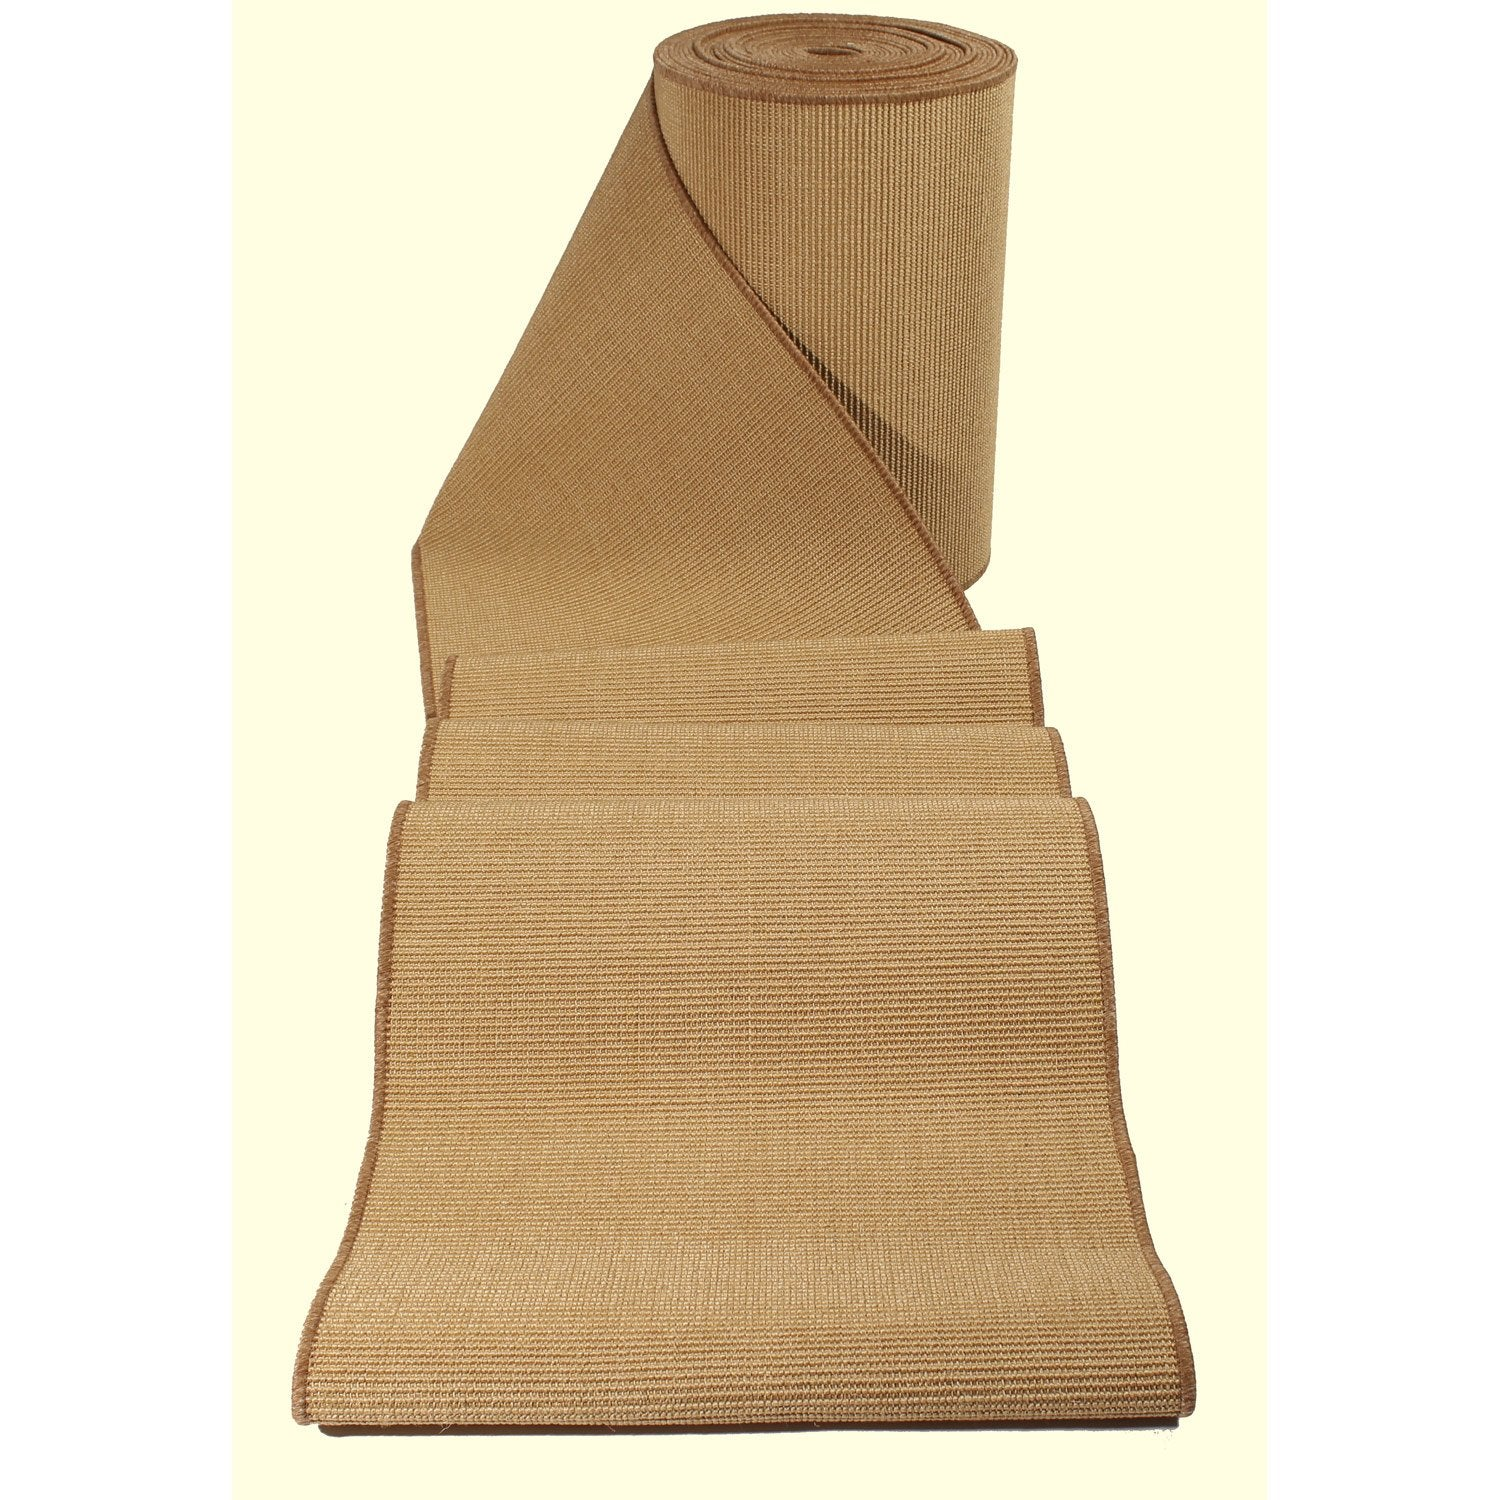 Tapis De Passage Sisal Naturel Leroy Merlin